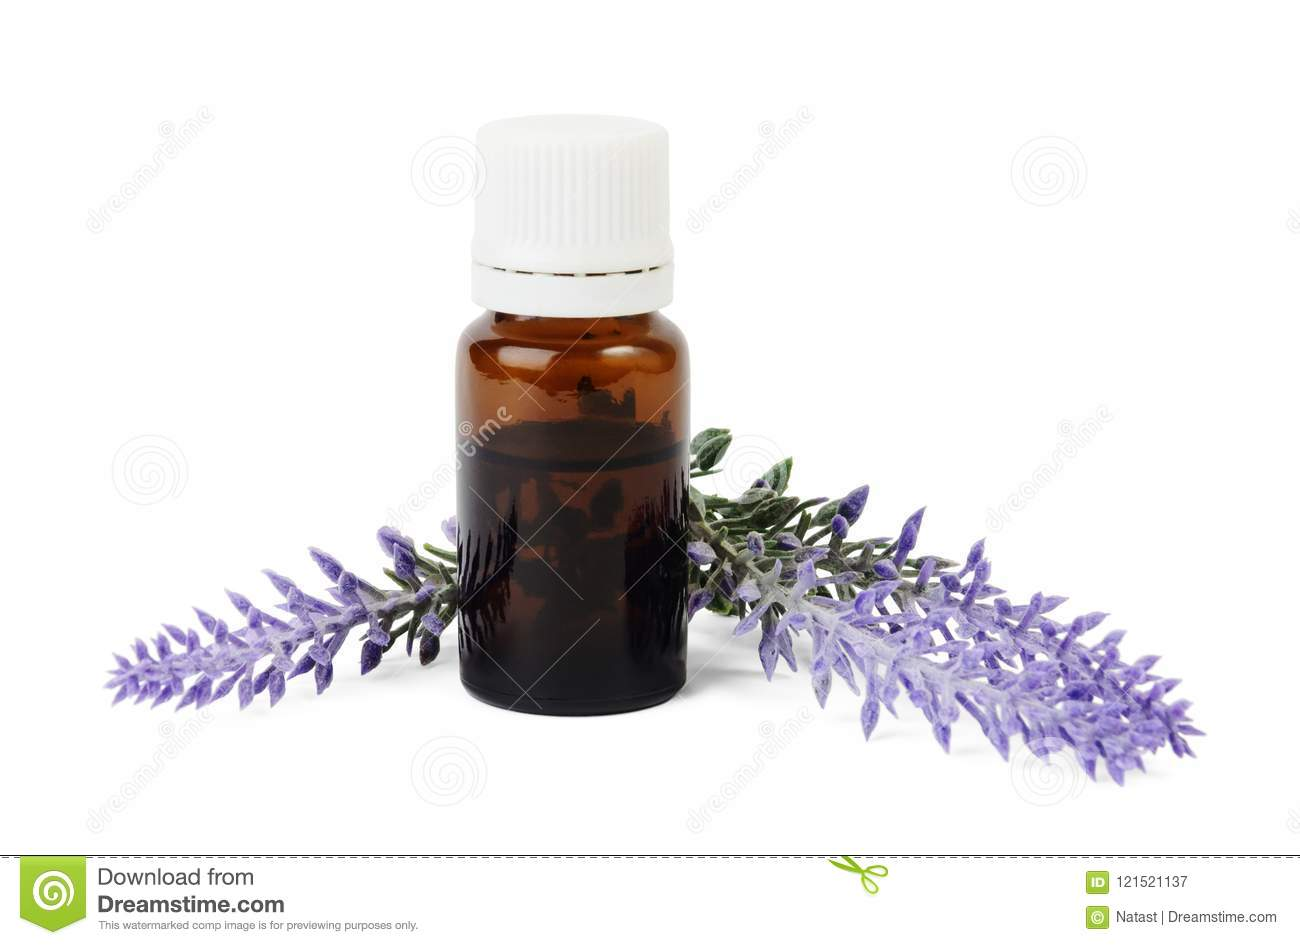 Bottle of organic essential oil and lavender flowers on white background